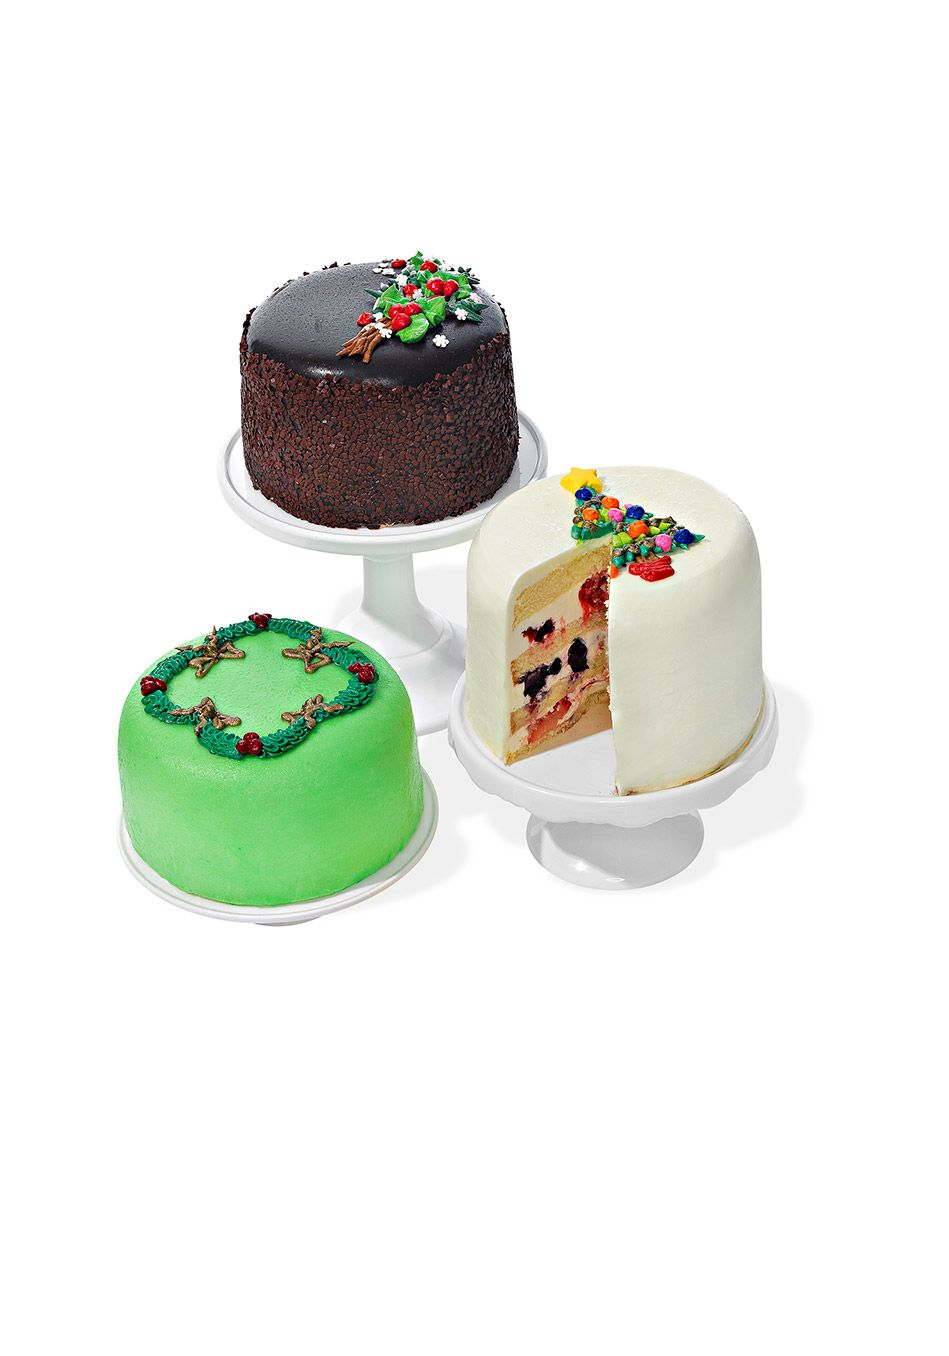 Holiday Cakes | Tasty | Pinterest